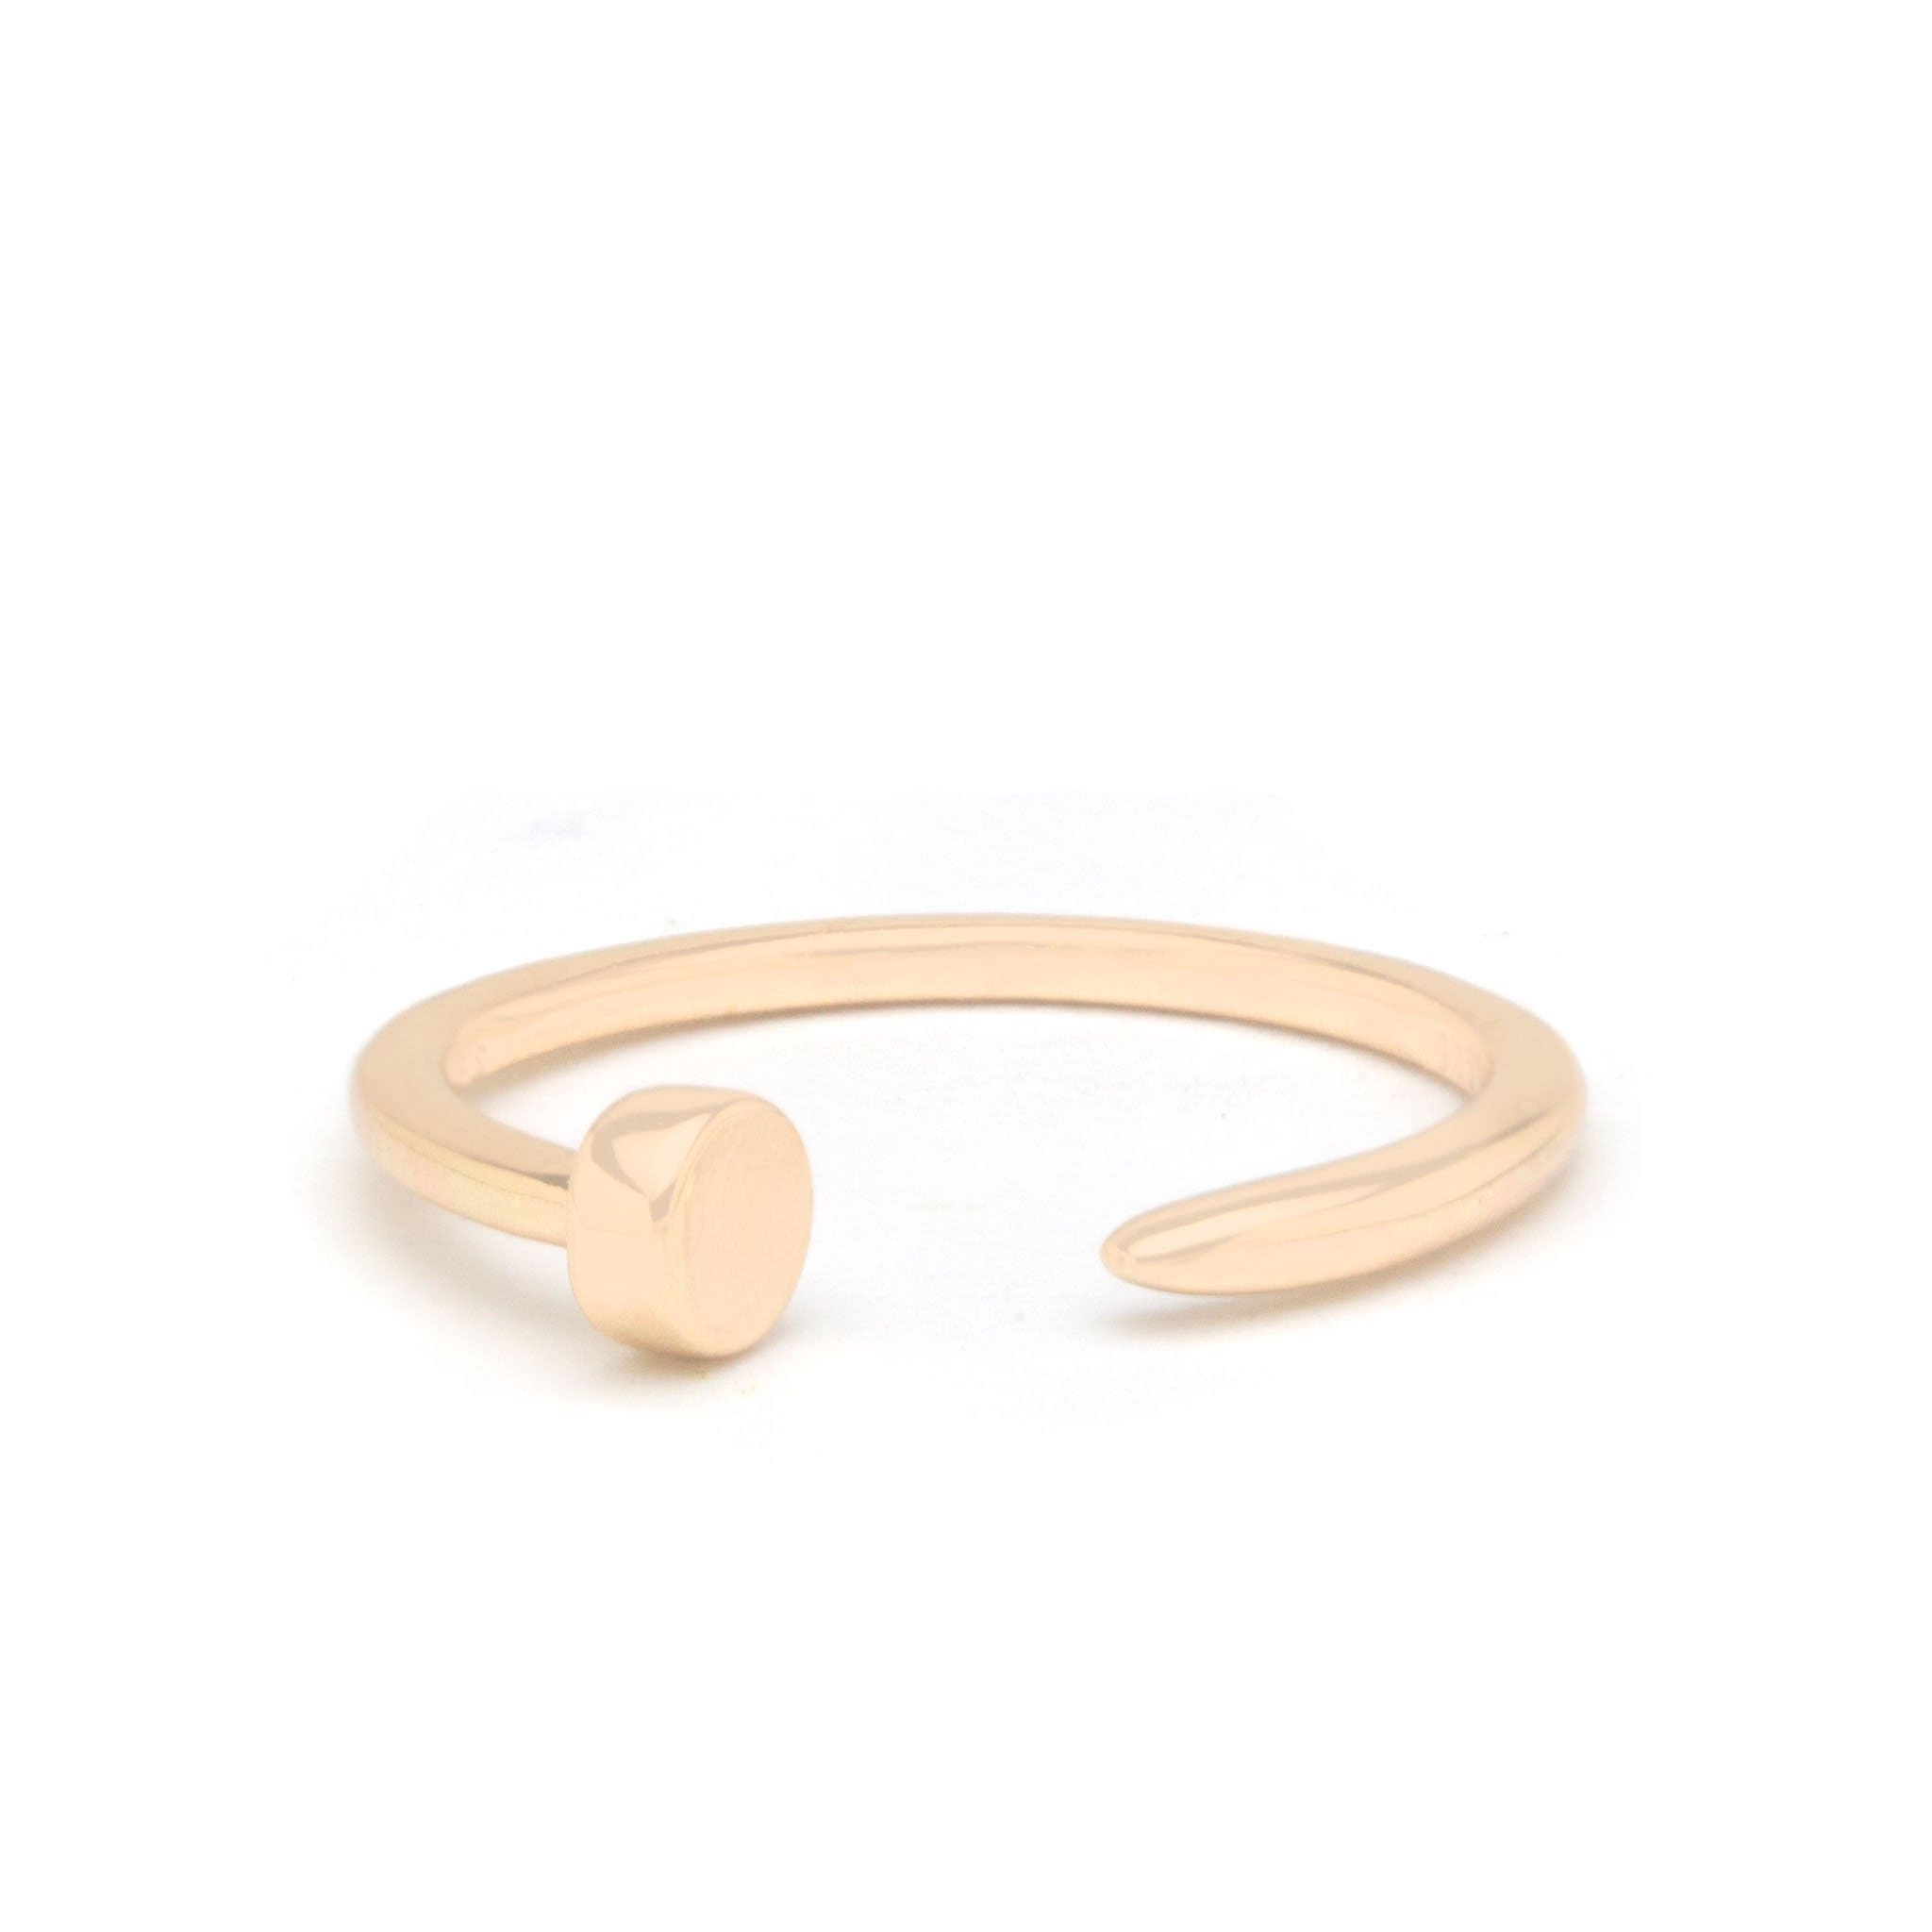 Jeanne's Jewels Rings Yellow Gold / 5/6 Ximena